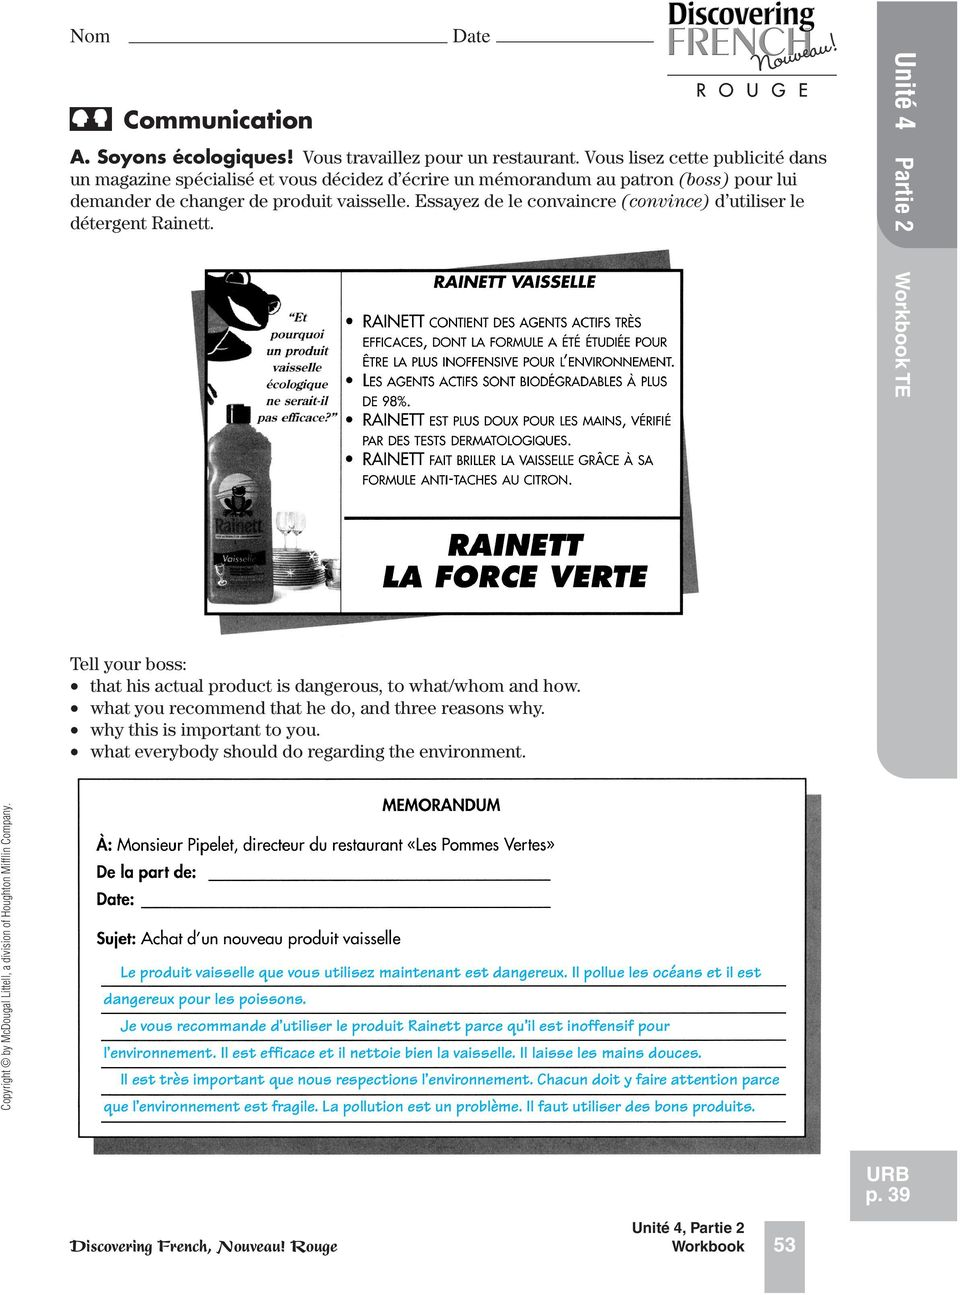 discovering french workbook answers